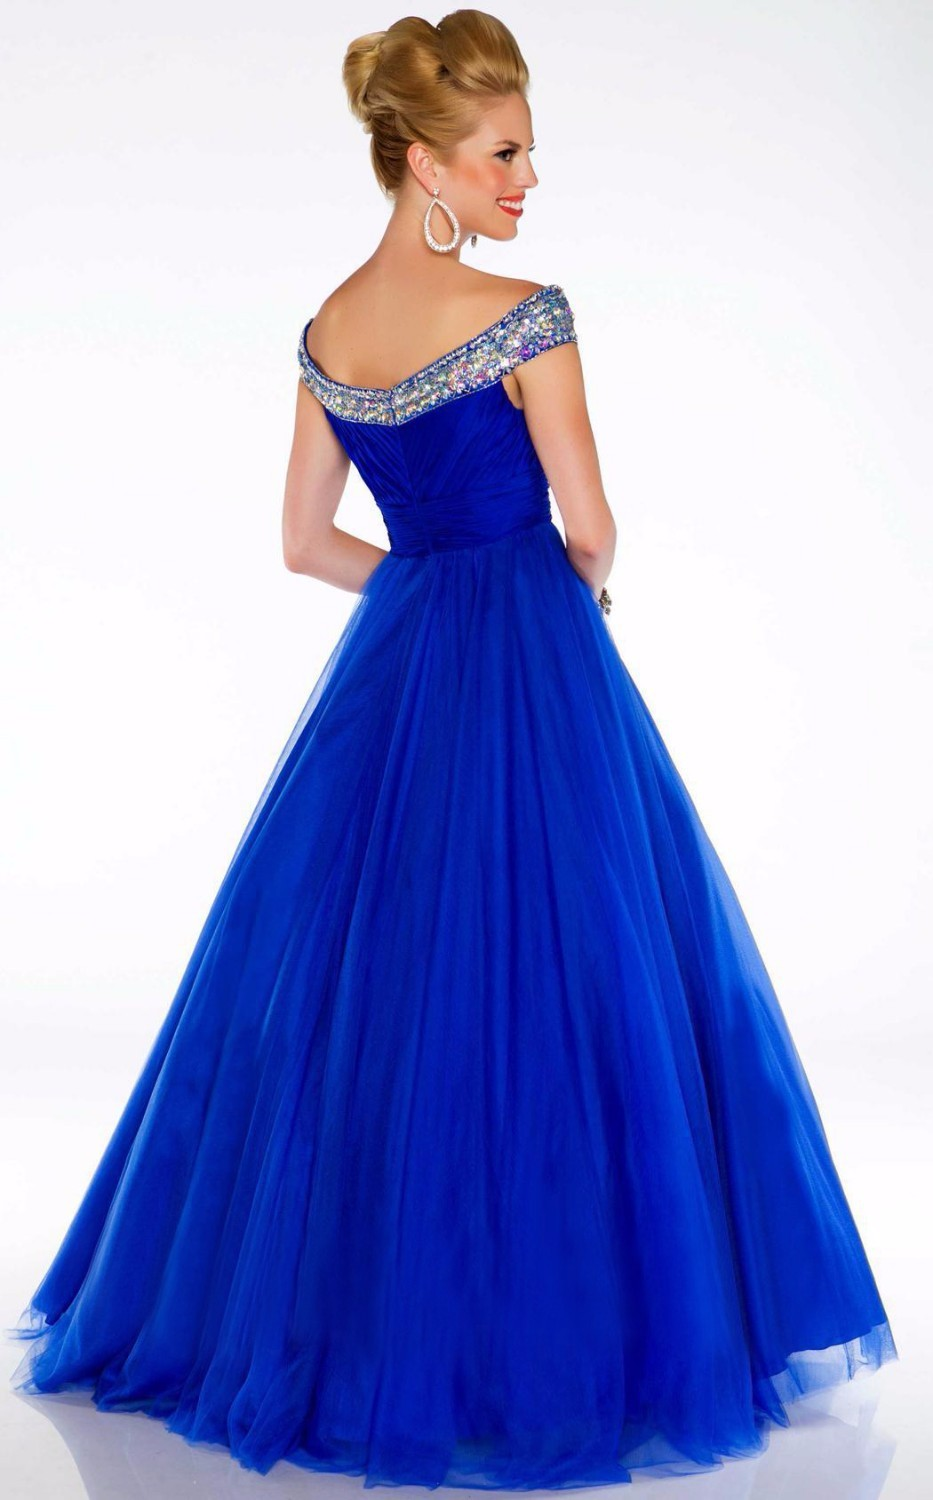 New-Arrival-2014-Sexy-Royal-Blue-Red-White-V-neck-A-Line-Modest-Evening-Pageant-Dresses (1)